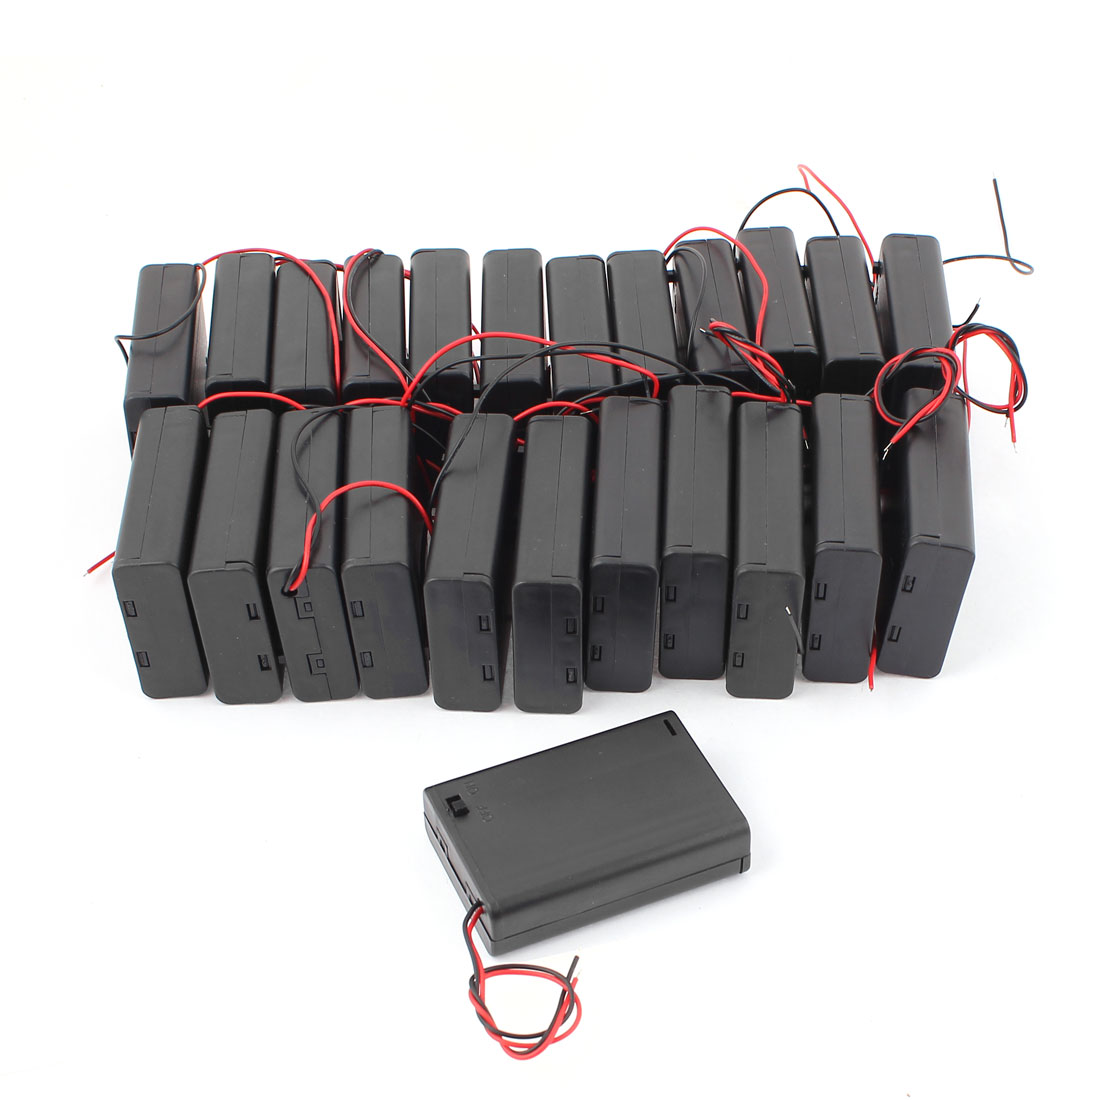 24Pcs 2 Wire Lead Plastic ON/OFF Switch Battery Holder Box w Cover for 3 x 1.5V AA Batteries